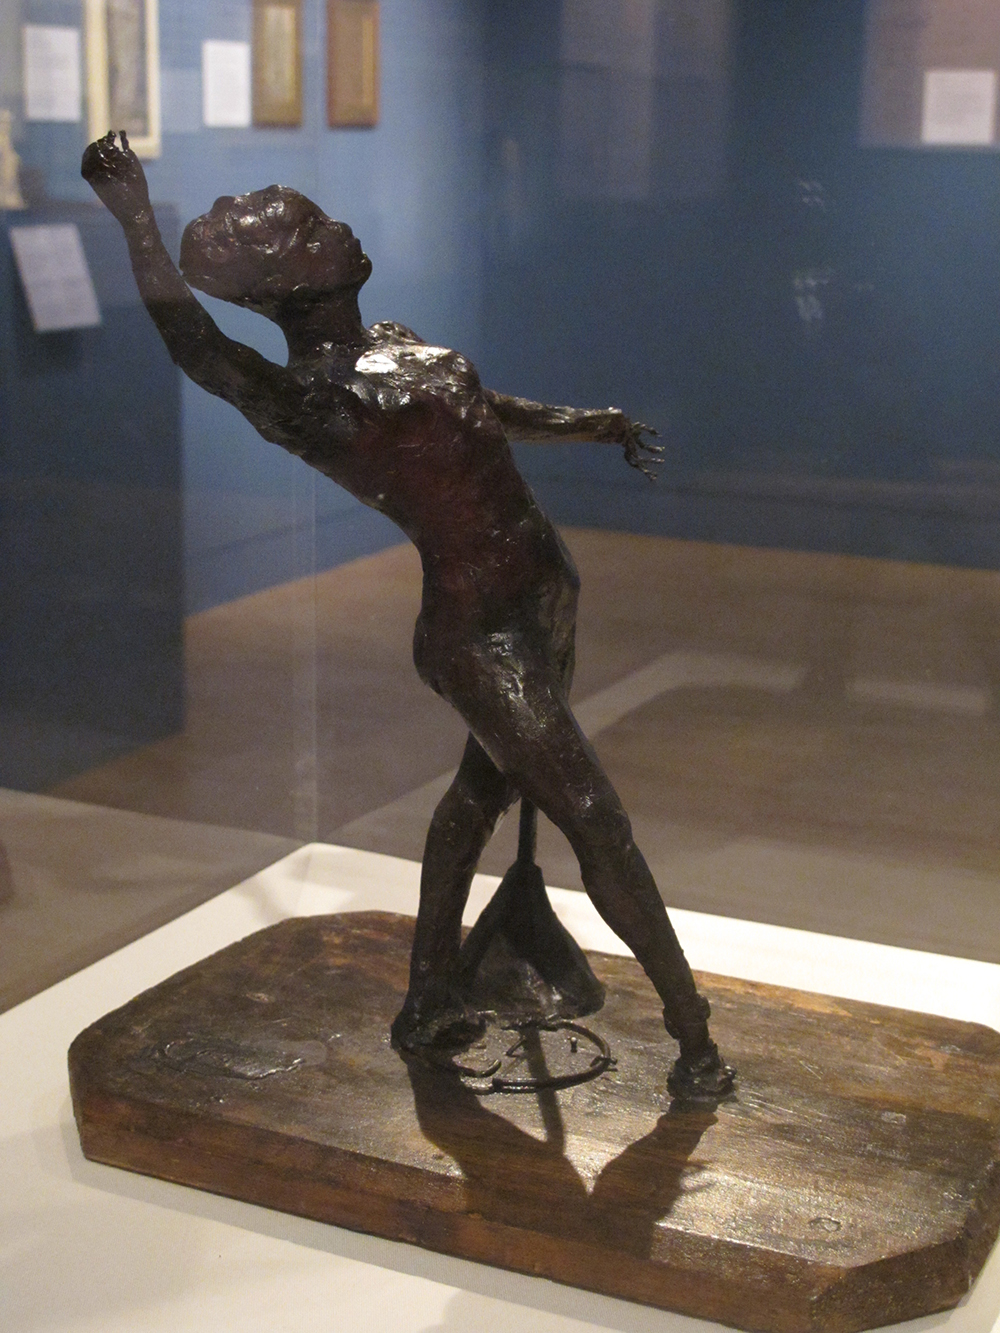 Dancer with a Tambourine, 1880s, Coloured wax over a commercially prefabricated metal wire armature, attached the a wooden base